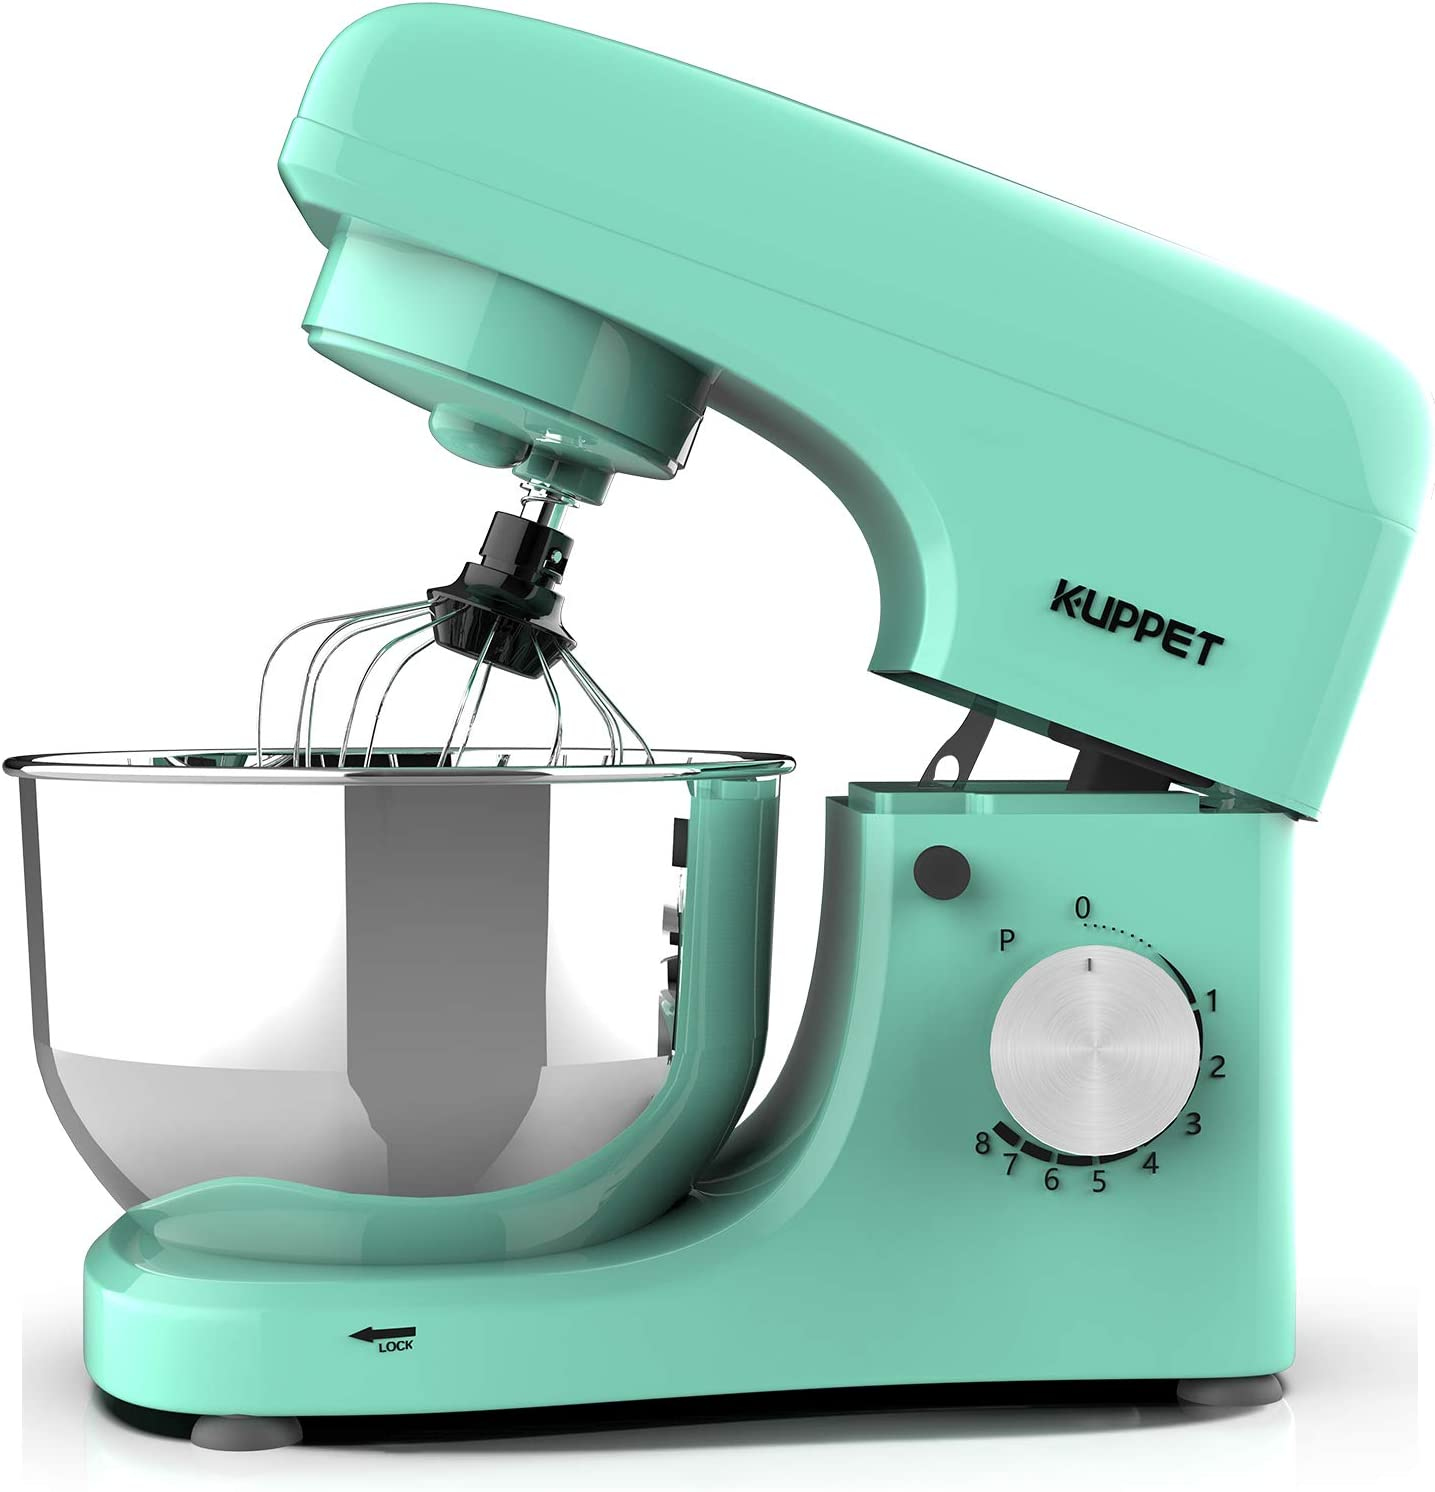 Kuppet Stand Mixers, 380W, 8-Speed Tilt-Head Electric Food Stand Mixer with Dough Hook, Wire Whip & Beater, Pouring Shield, 4.7QT Stainless Steel Bowl, Macaron green.